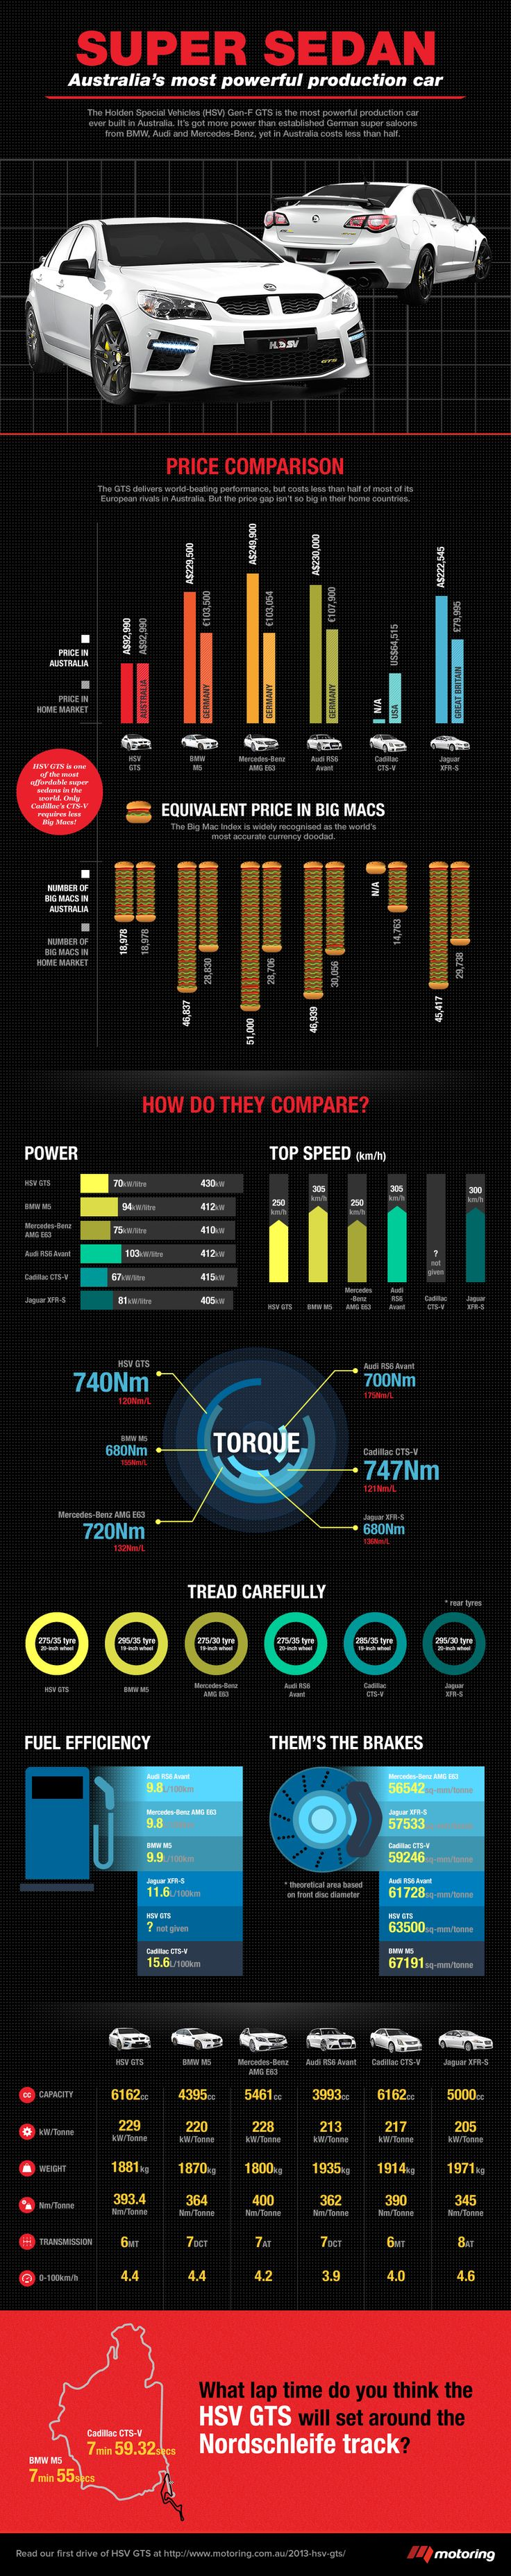 2014 Holden HSV GTS infographic